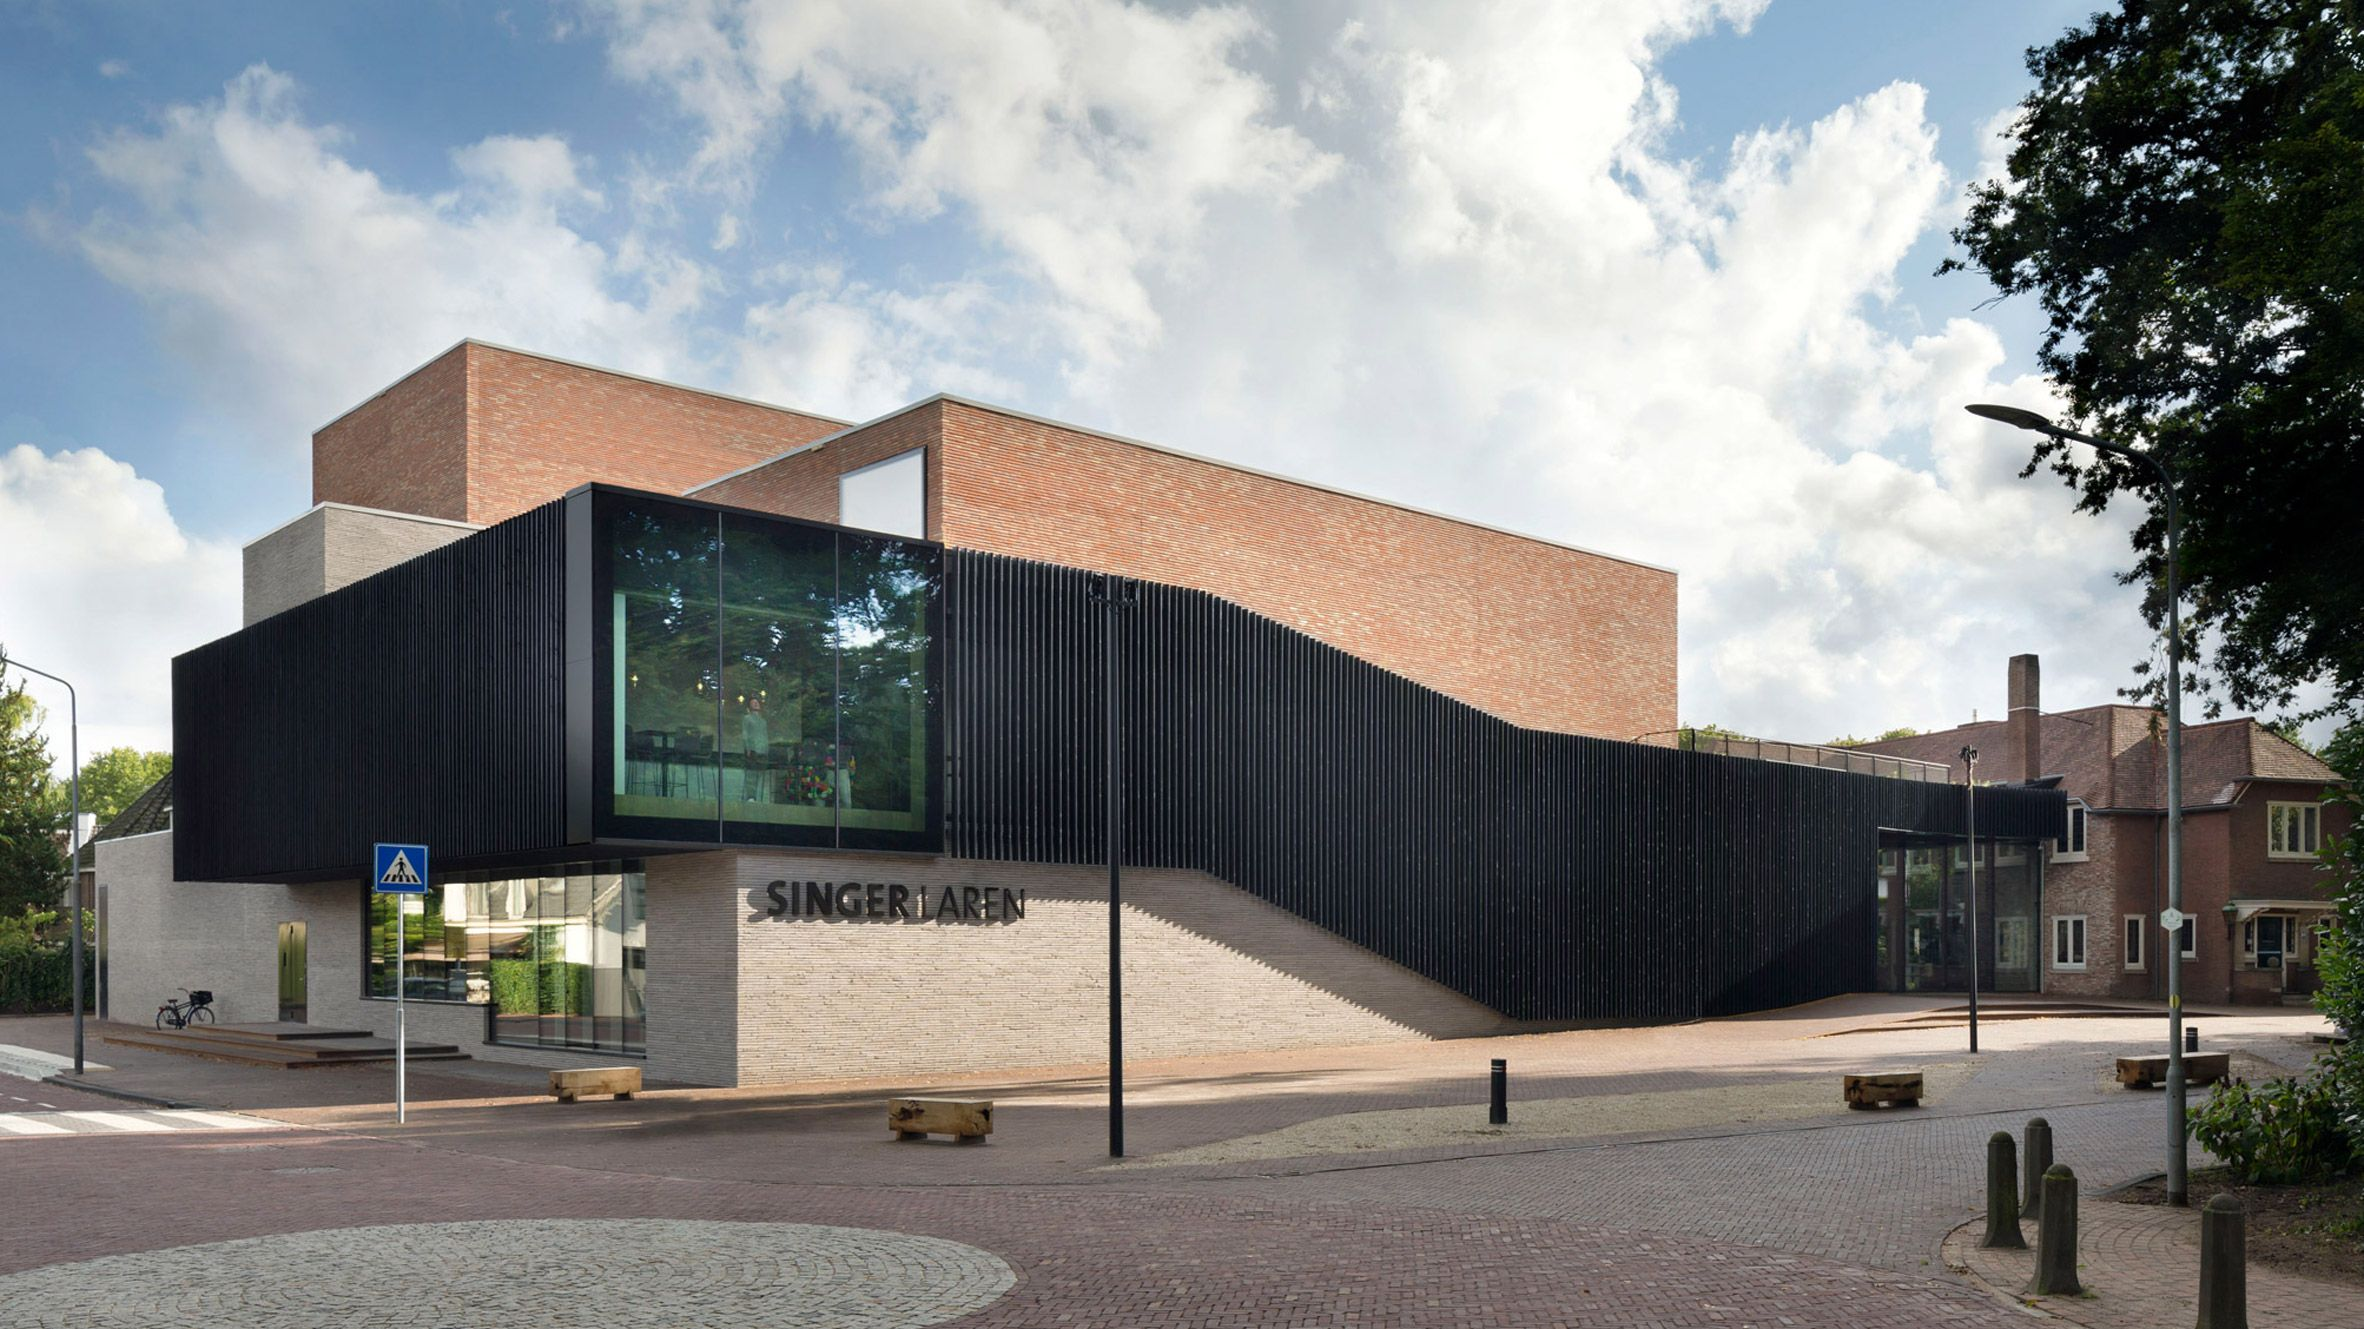 ... Studio KRFT Has Updated And Extended A Museum And Cultural Complex In  The Dutch Town Of Laren | Concentration Office 4.0 | Pinterest |  Architecture Au2026